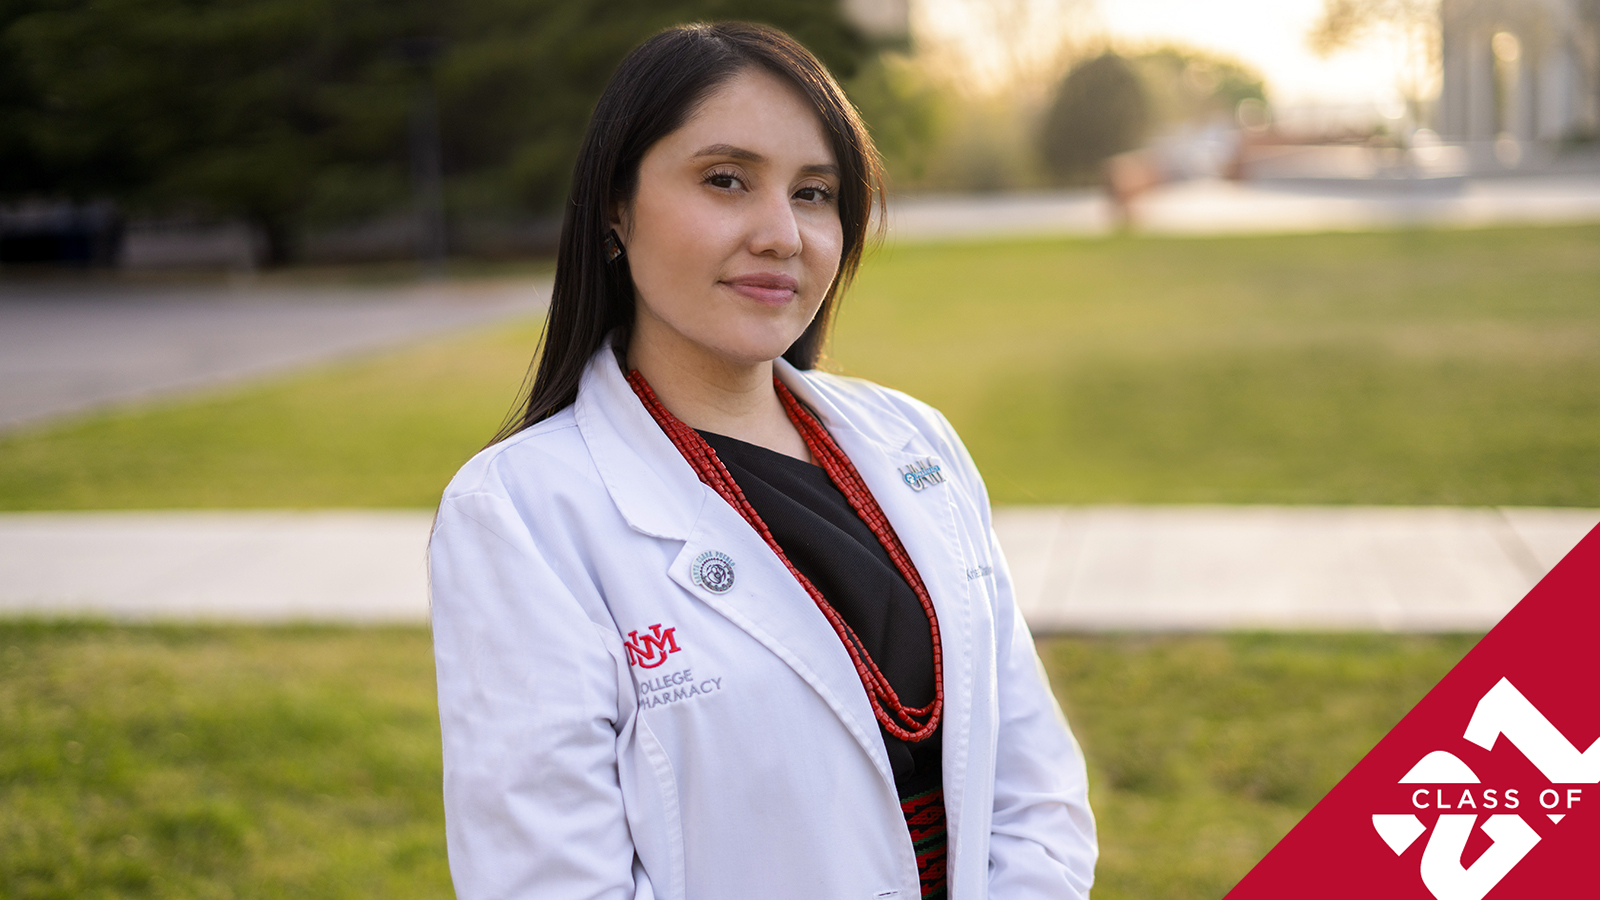 Persistence pays off as Krissa Chavarria earns her Doctor of Pharmacy Degree